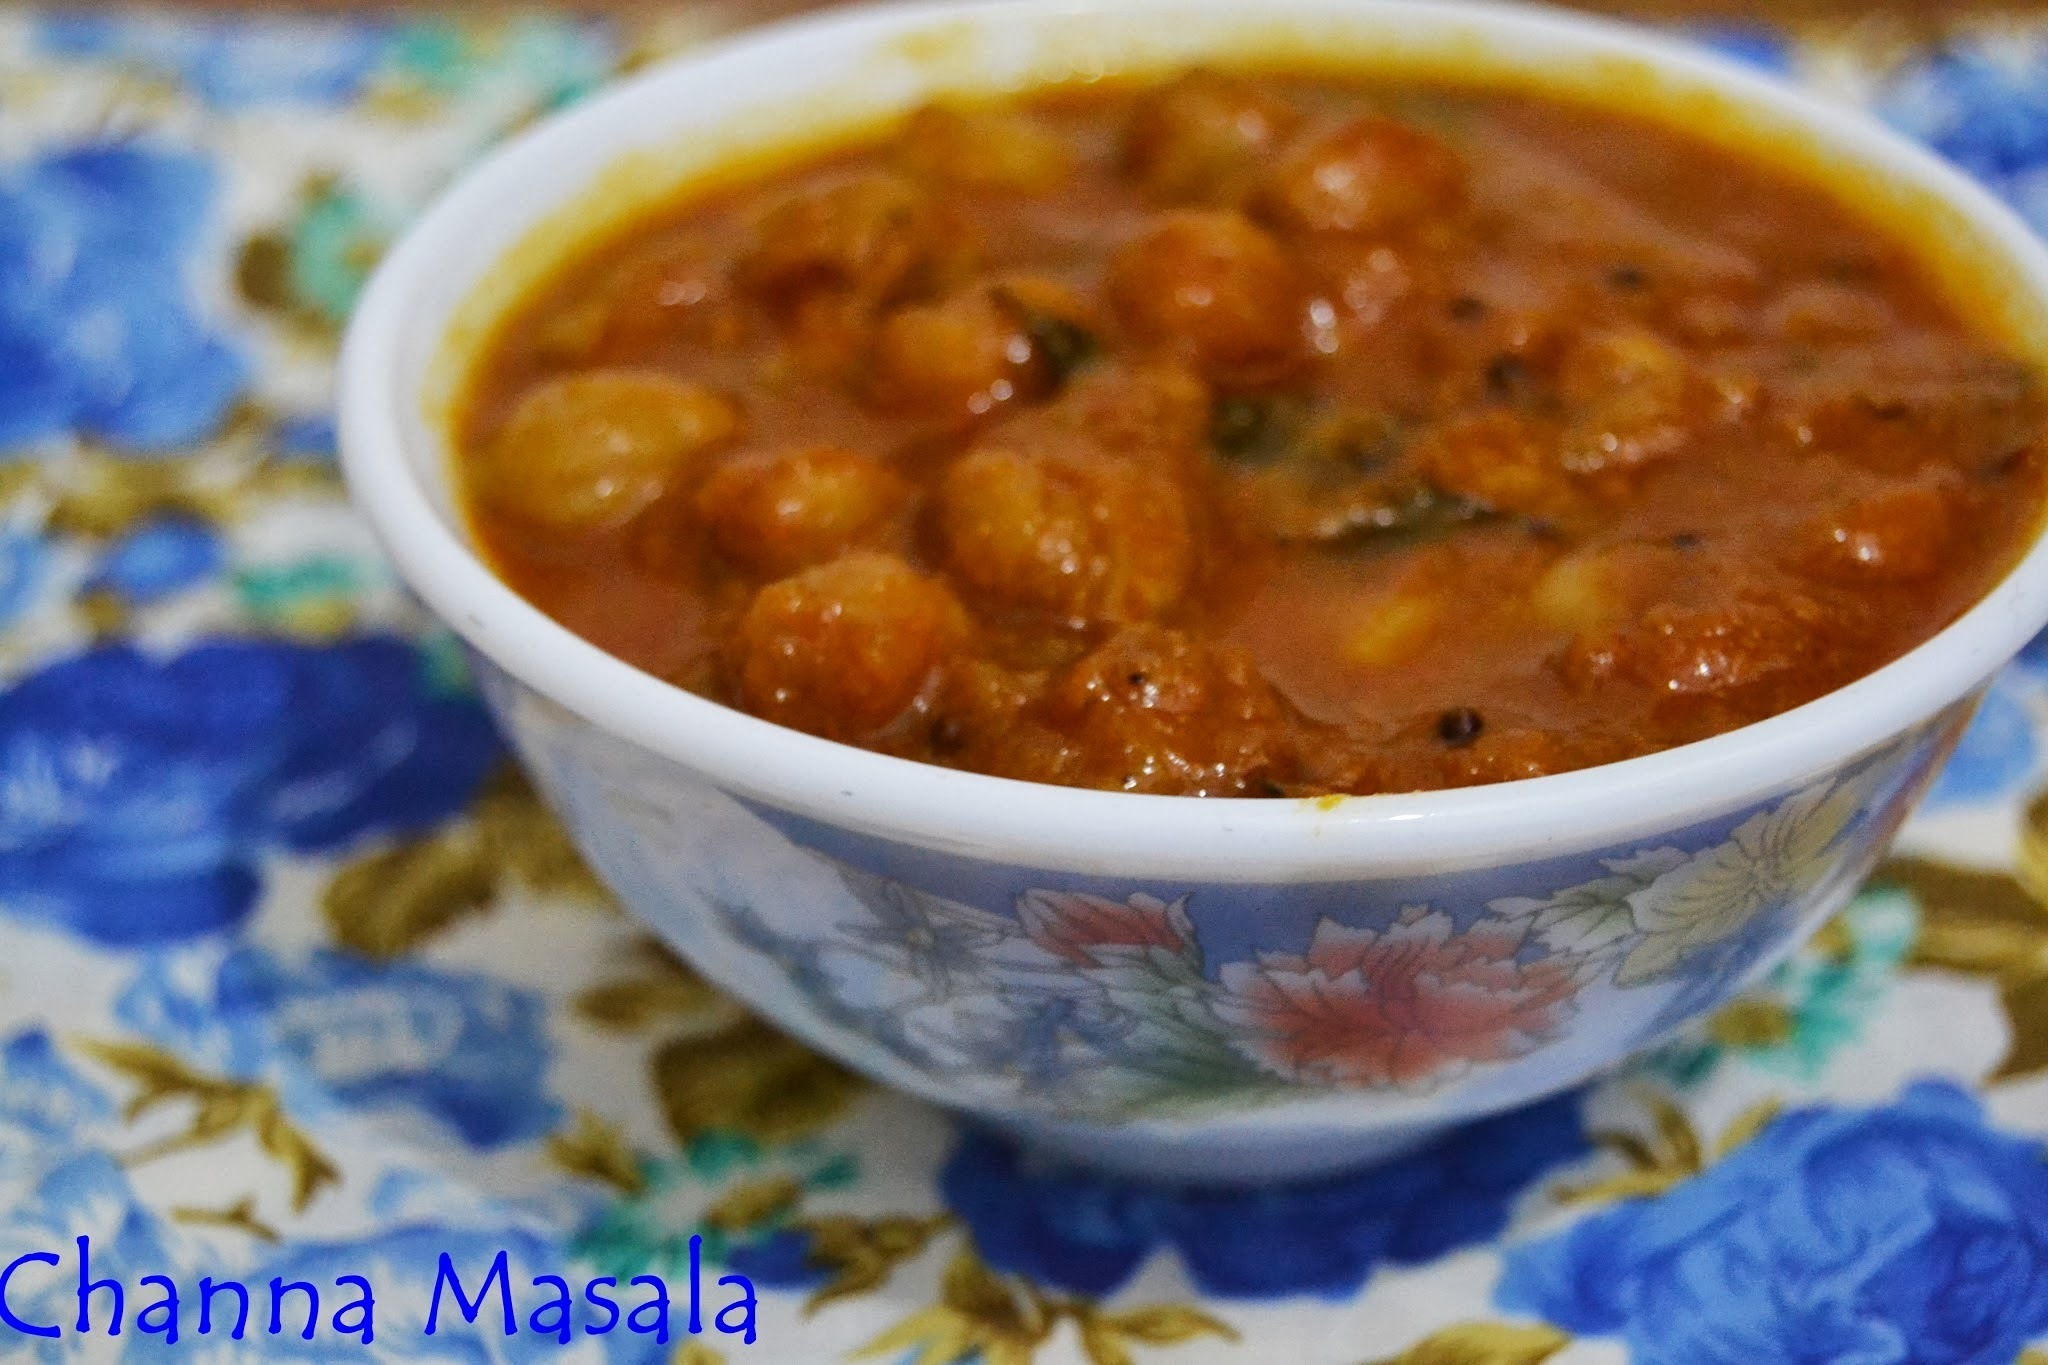 Chickpeas/ Channa Masala in Coconut Milk